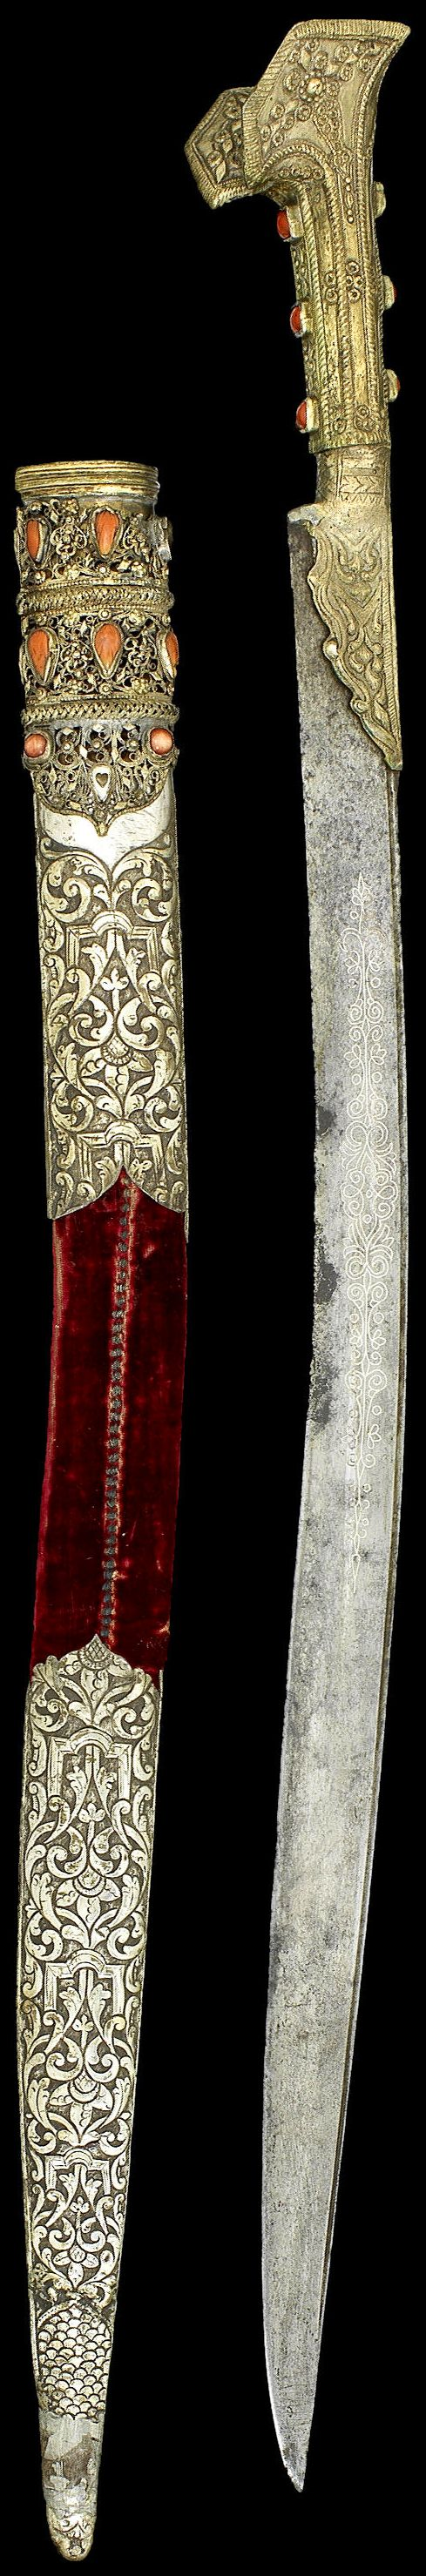 Ottoman yataghan / yatagan, AH 1220/ AD 1805-6, steel blade decorated with silver inlay with floral and vegetal motifs on one side and inscriptions on the other, the hilt with prominent ears forming the pommel cast with circular motifs and set with glass, the scabbard clad with elaborately embossed rococo style silver at top and bottom with coral, 76 cm, inscribed with the names of the Seven Sleepers and their dog. The owner's name, Mustafa bashi ibn Ahmad. 'The work of 'Abdallah [?]'.